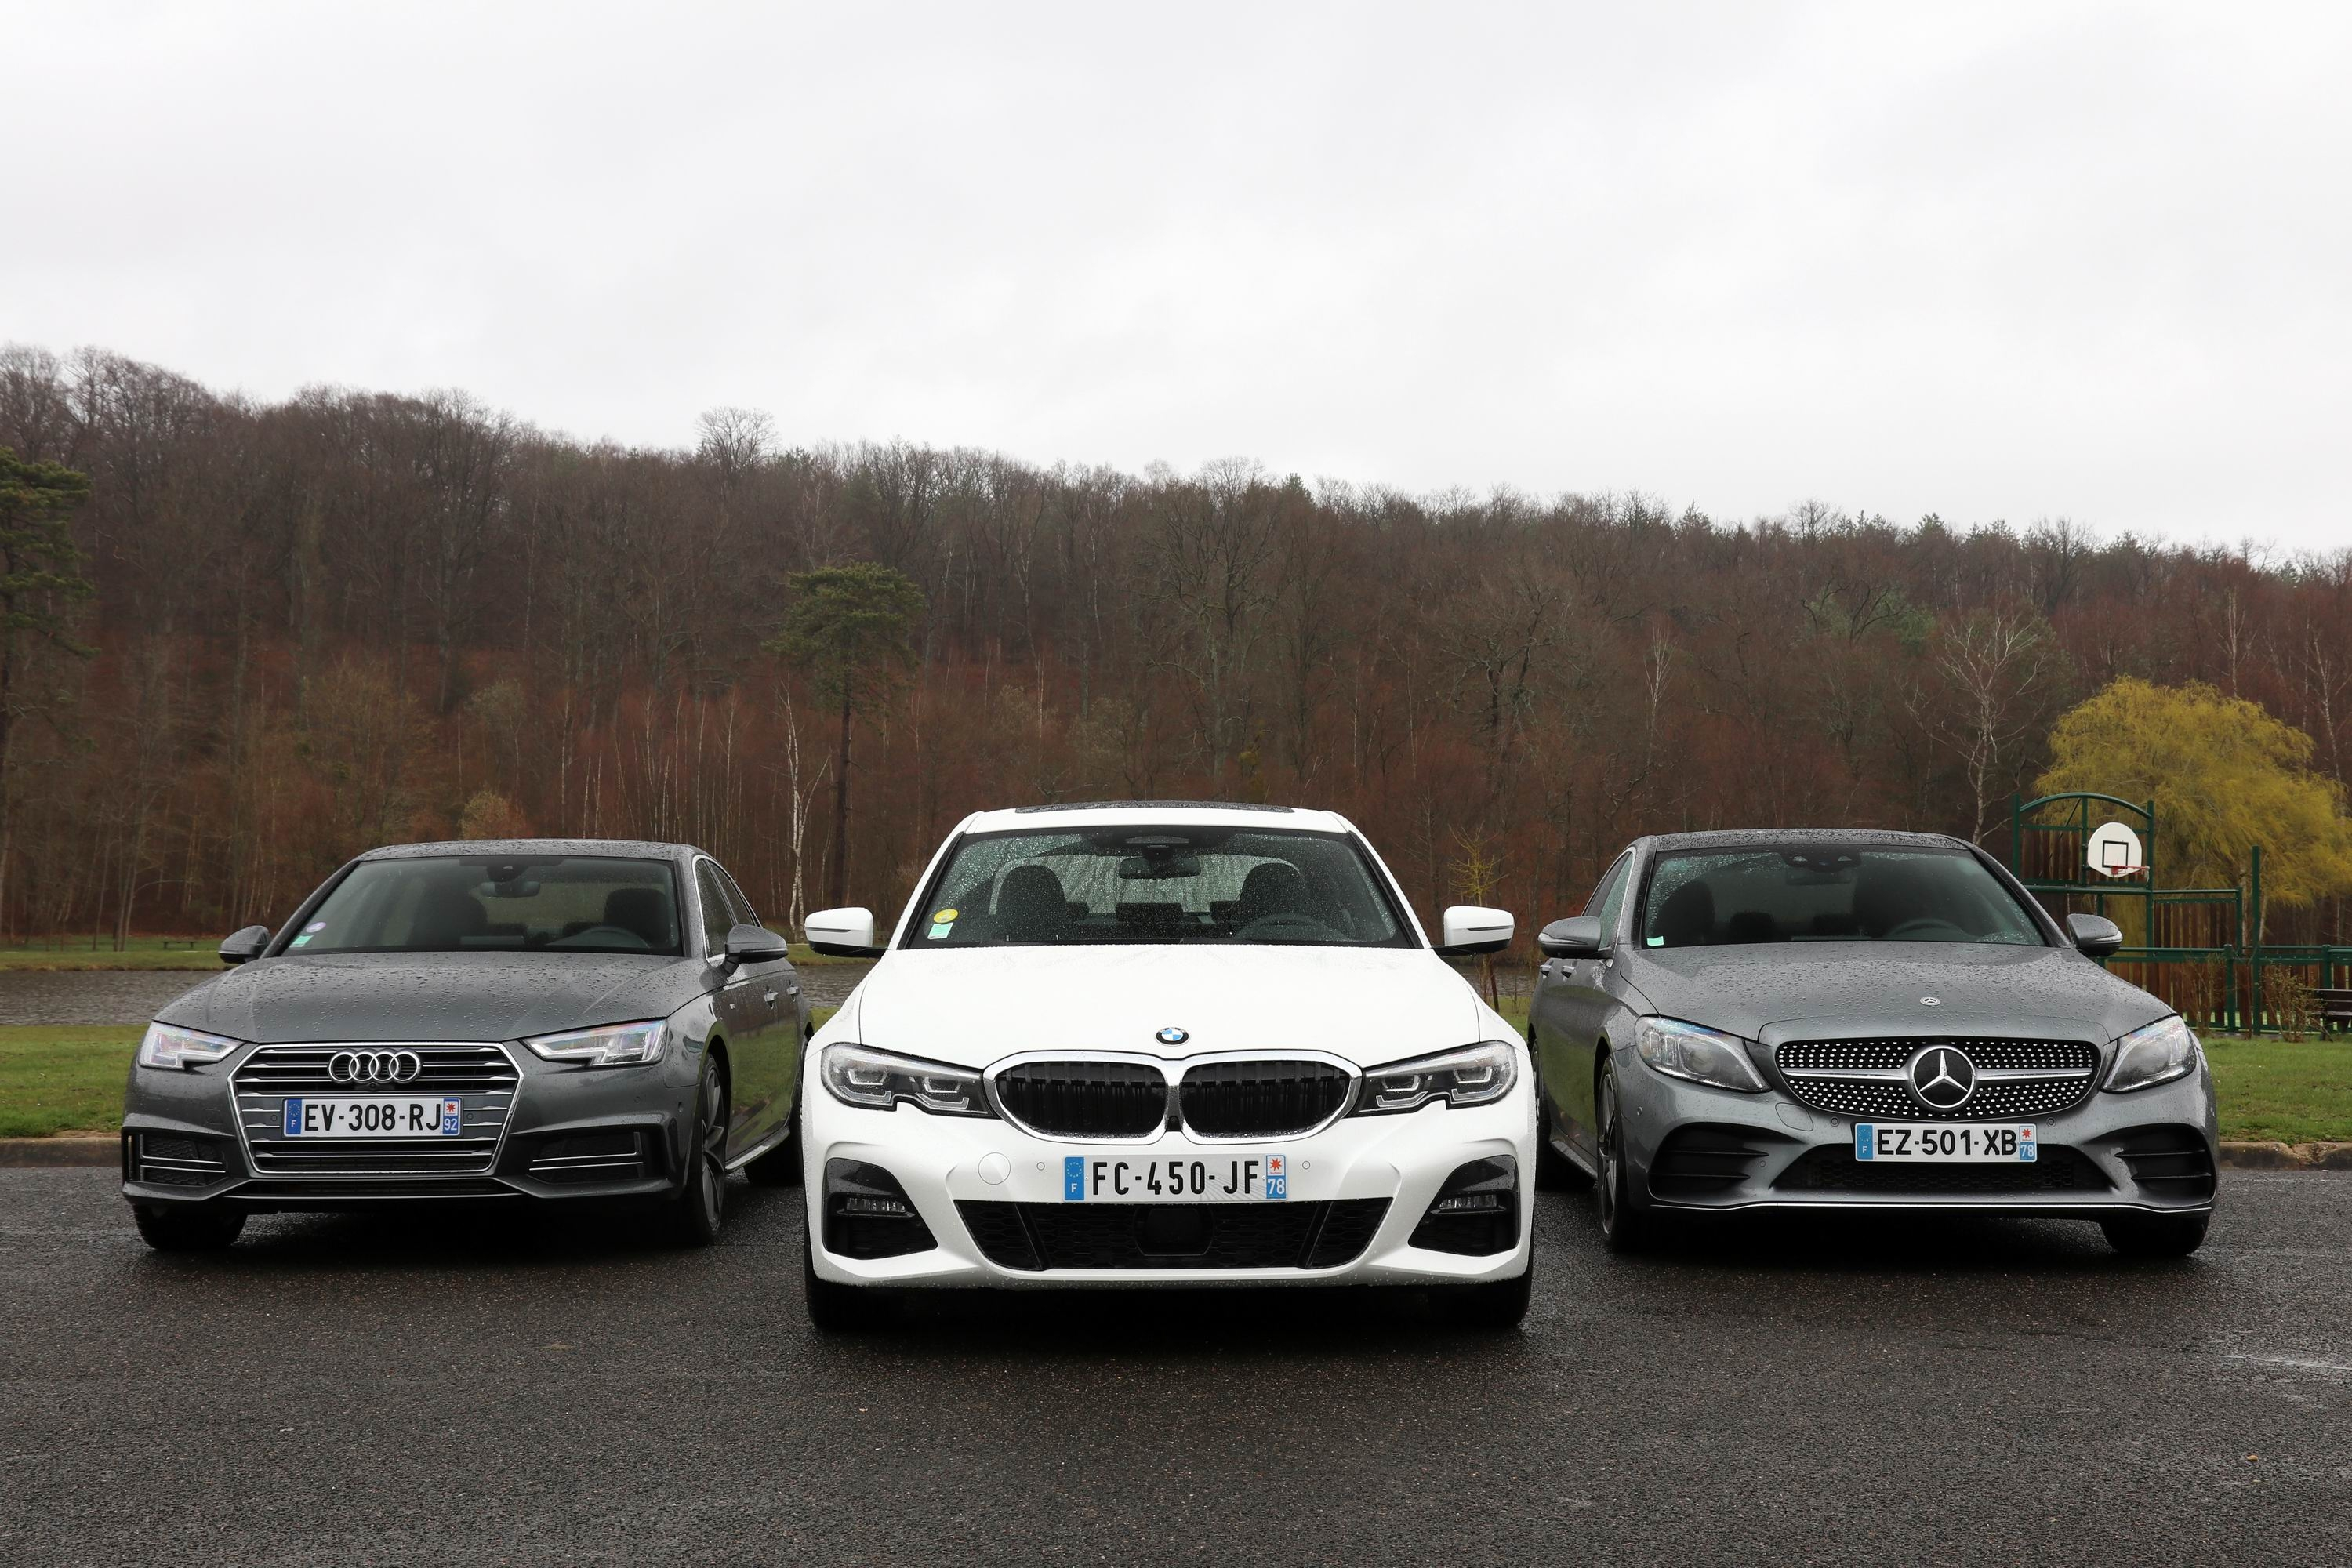 Comparatif Video Bmw Serie 3 Vs Mercedes Classe C Vs Audi